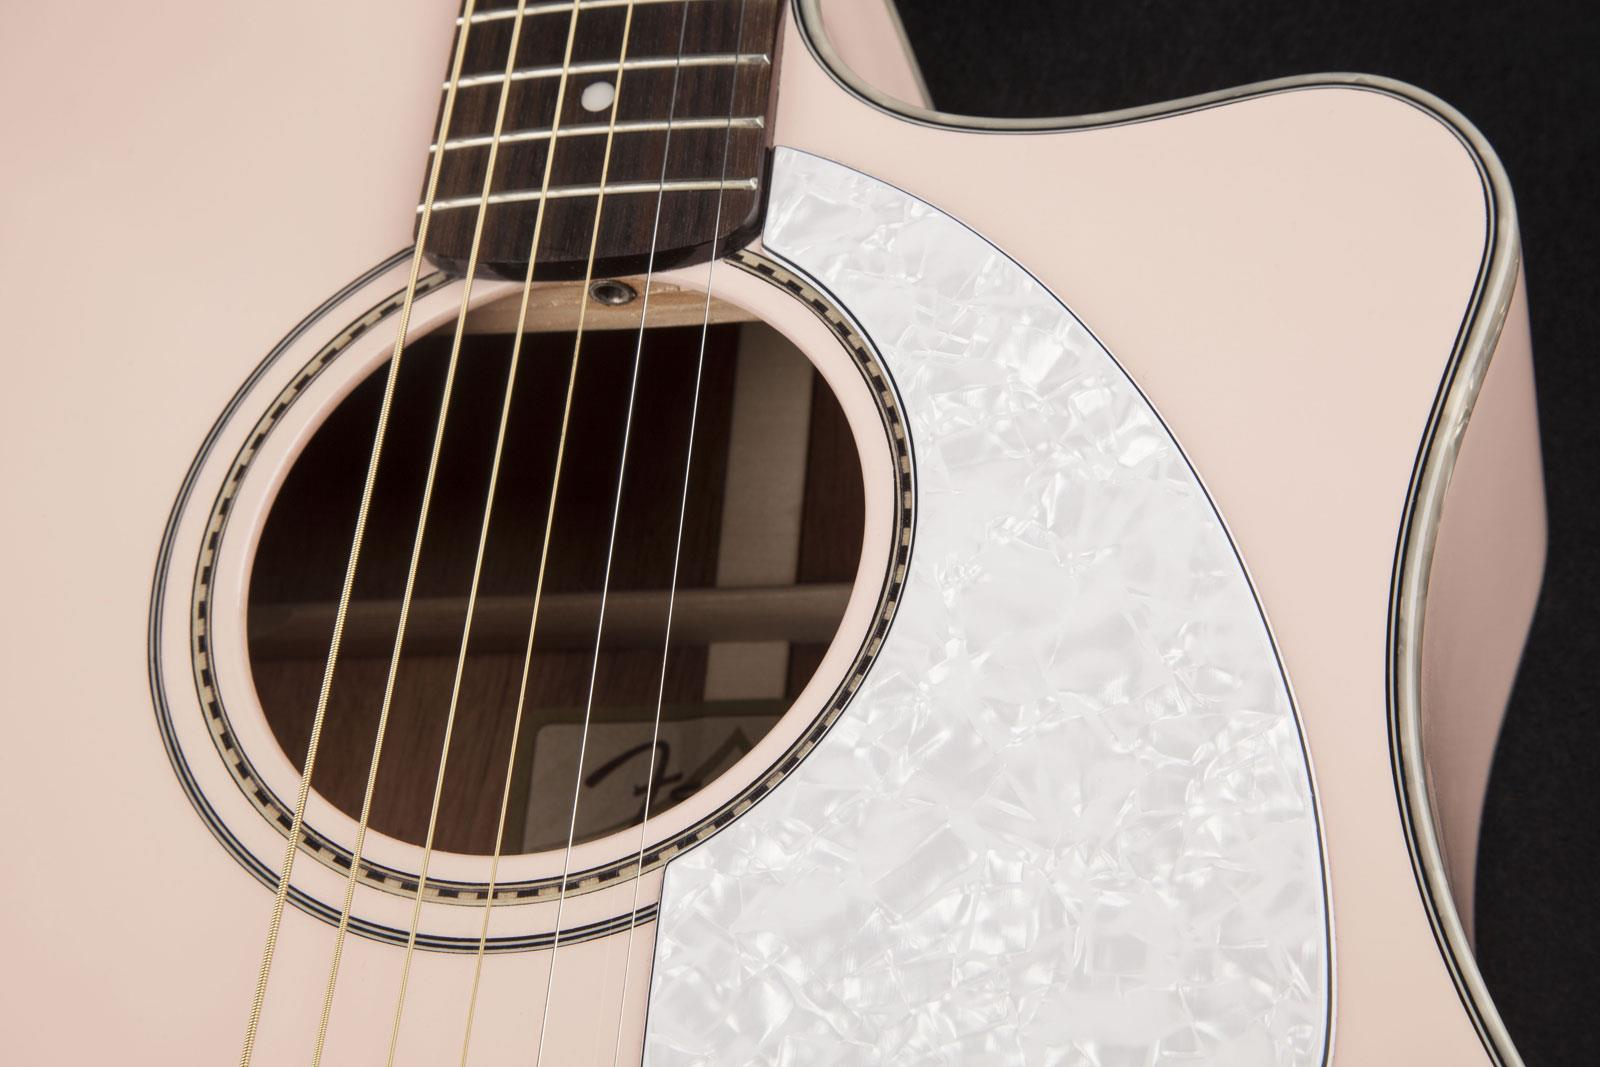 e6b17af3a5 ... Fender Sonoran SCE Shell Pink acoustic-electric cutaway dreadnought  guitar ...